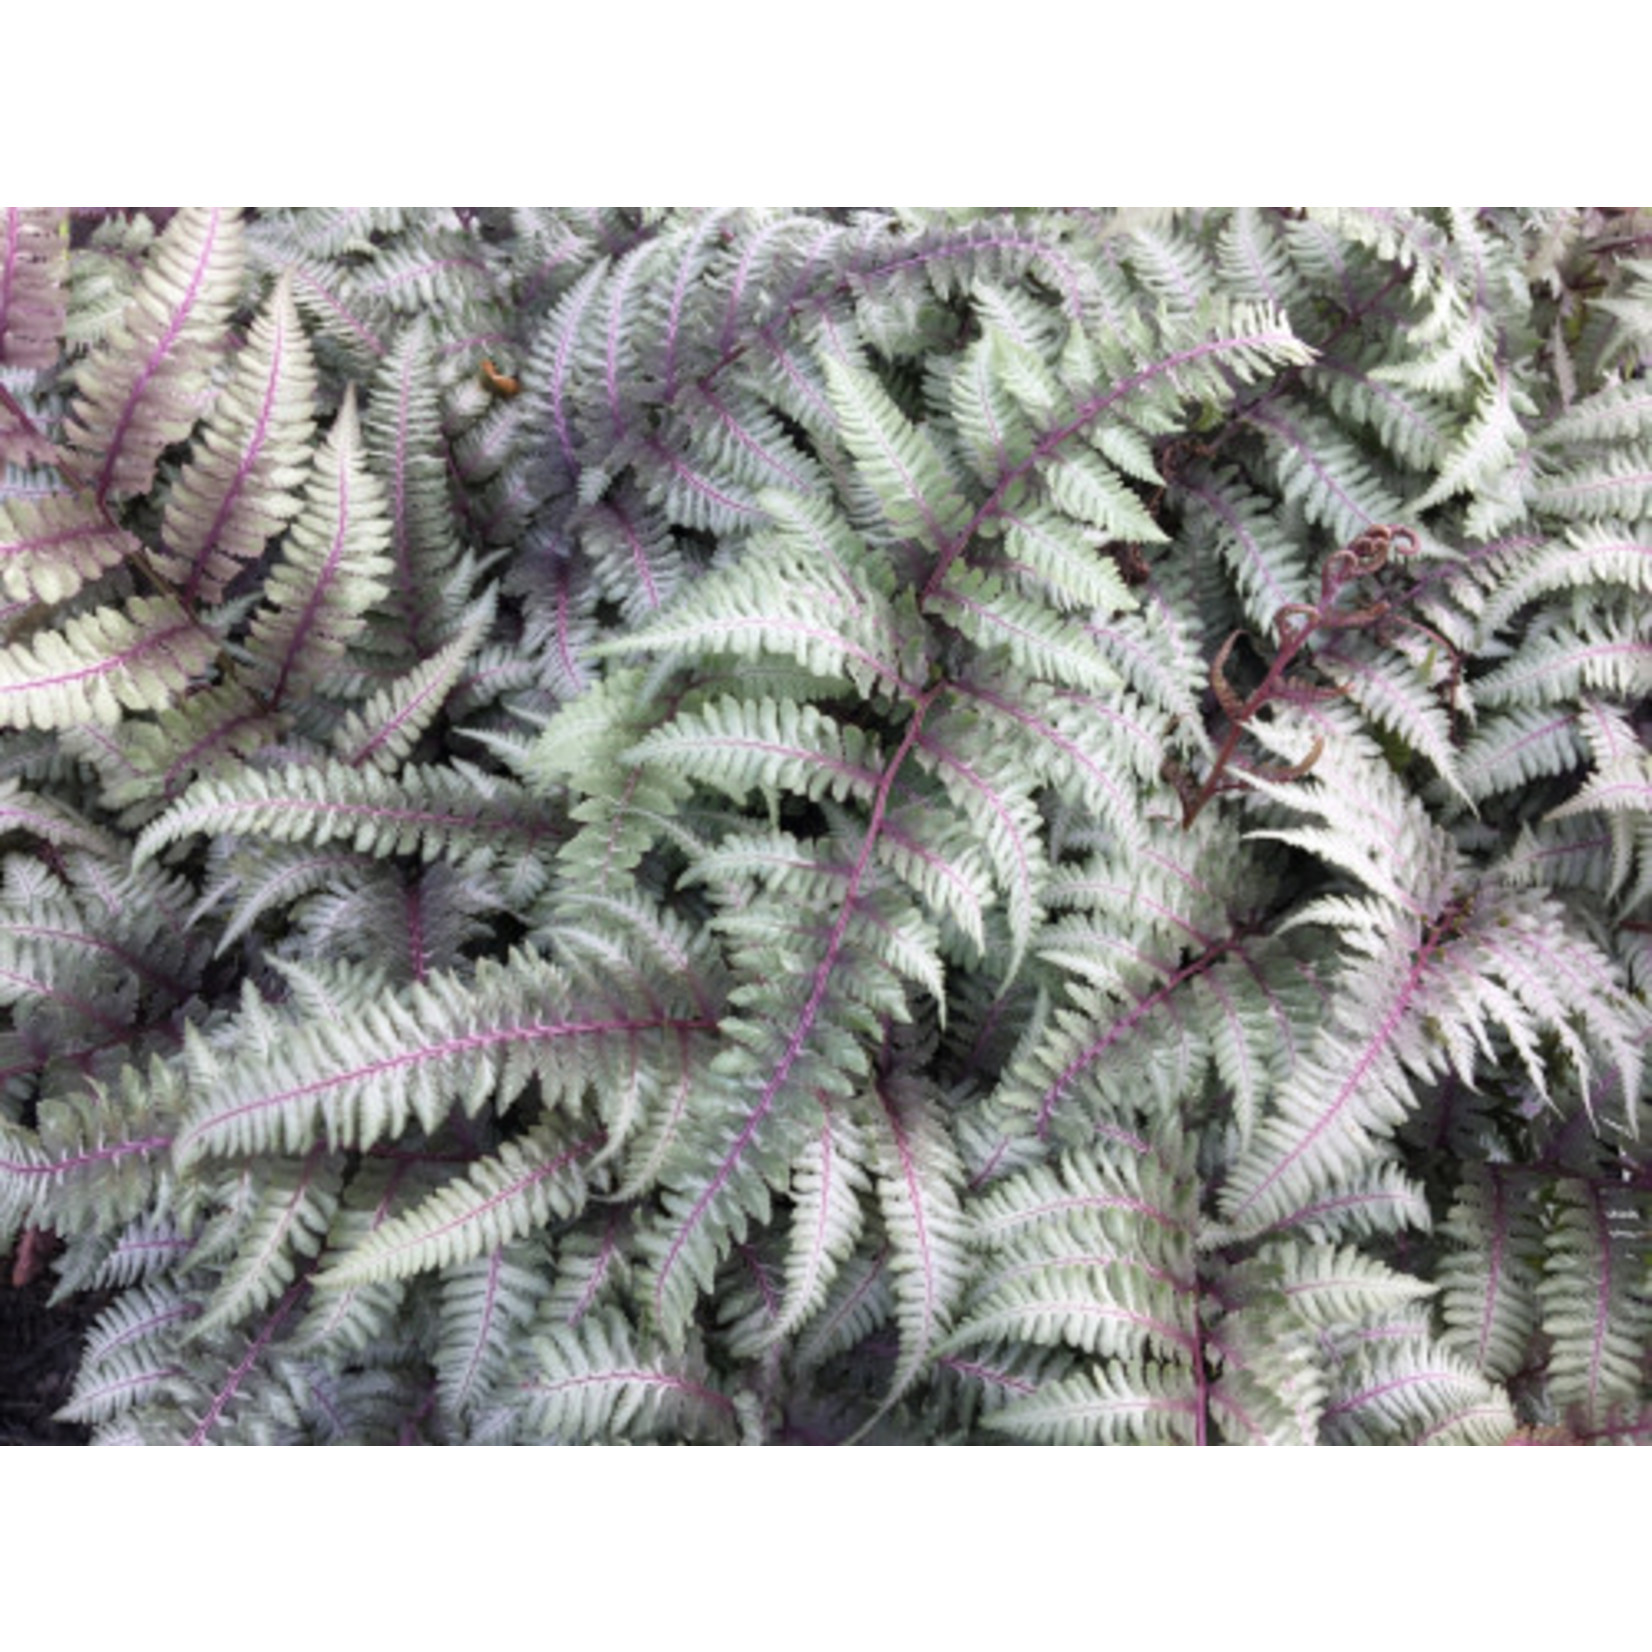 Fern 'japanese painted' 1 gal